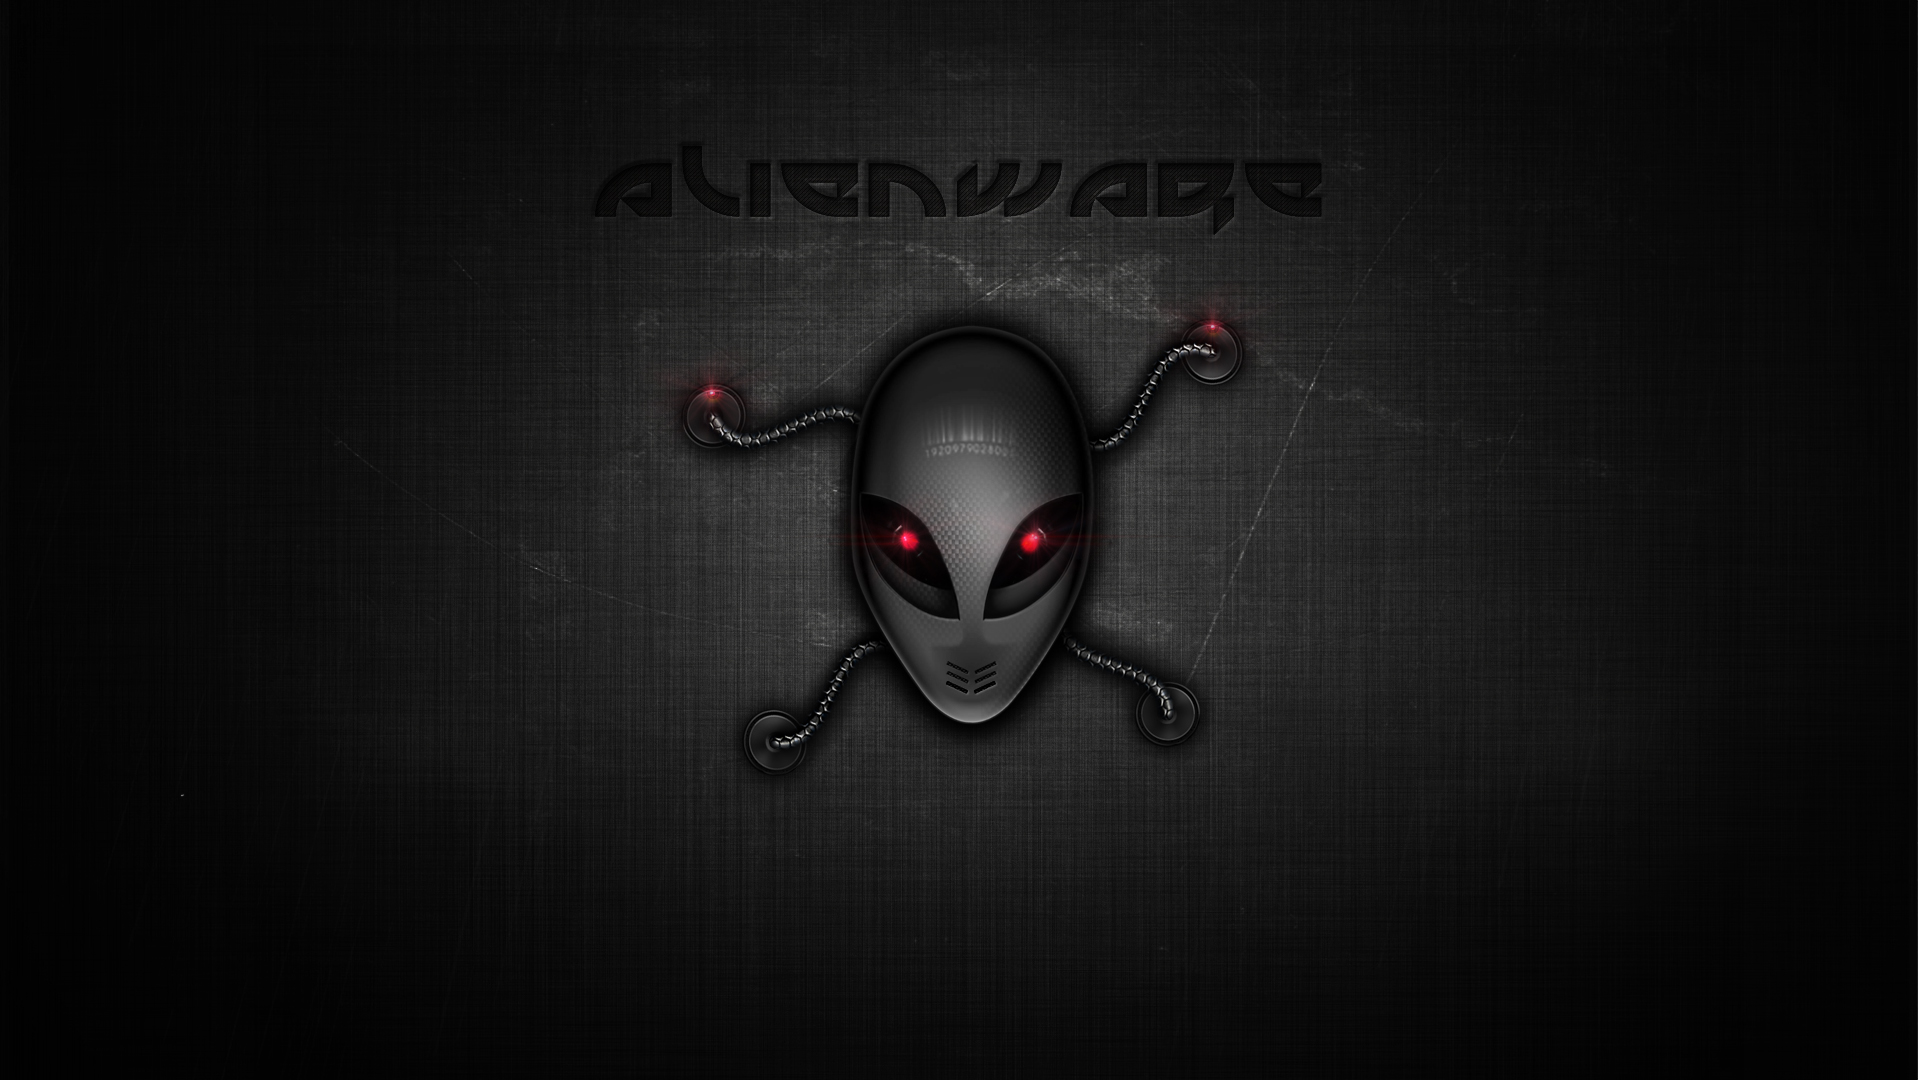 Alienware by Sc0uT1.0